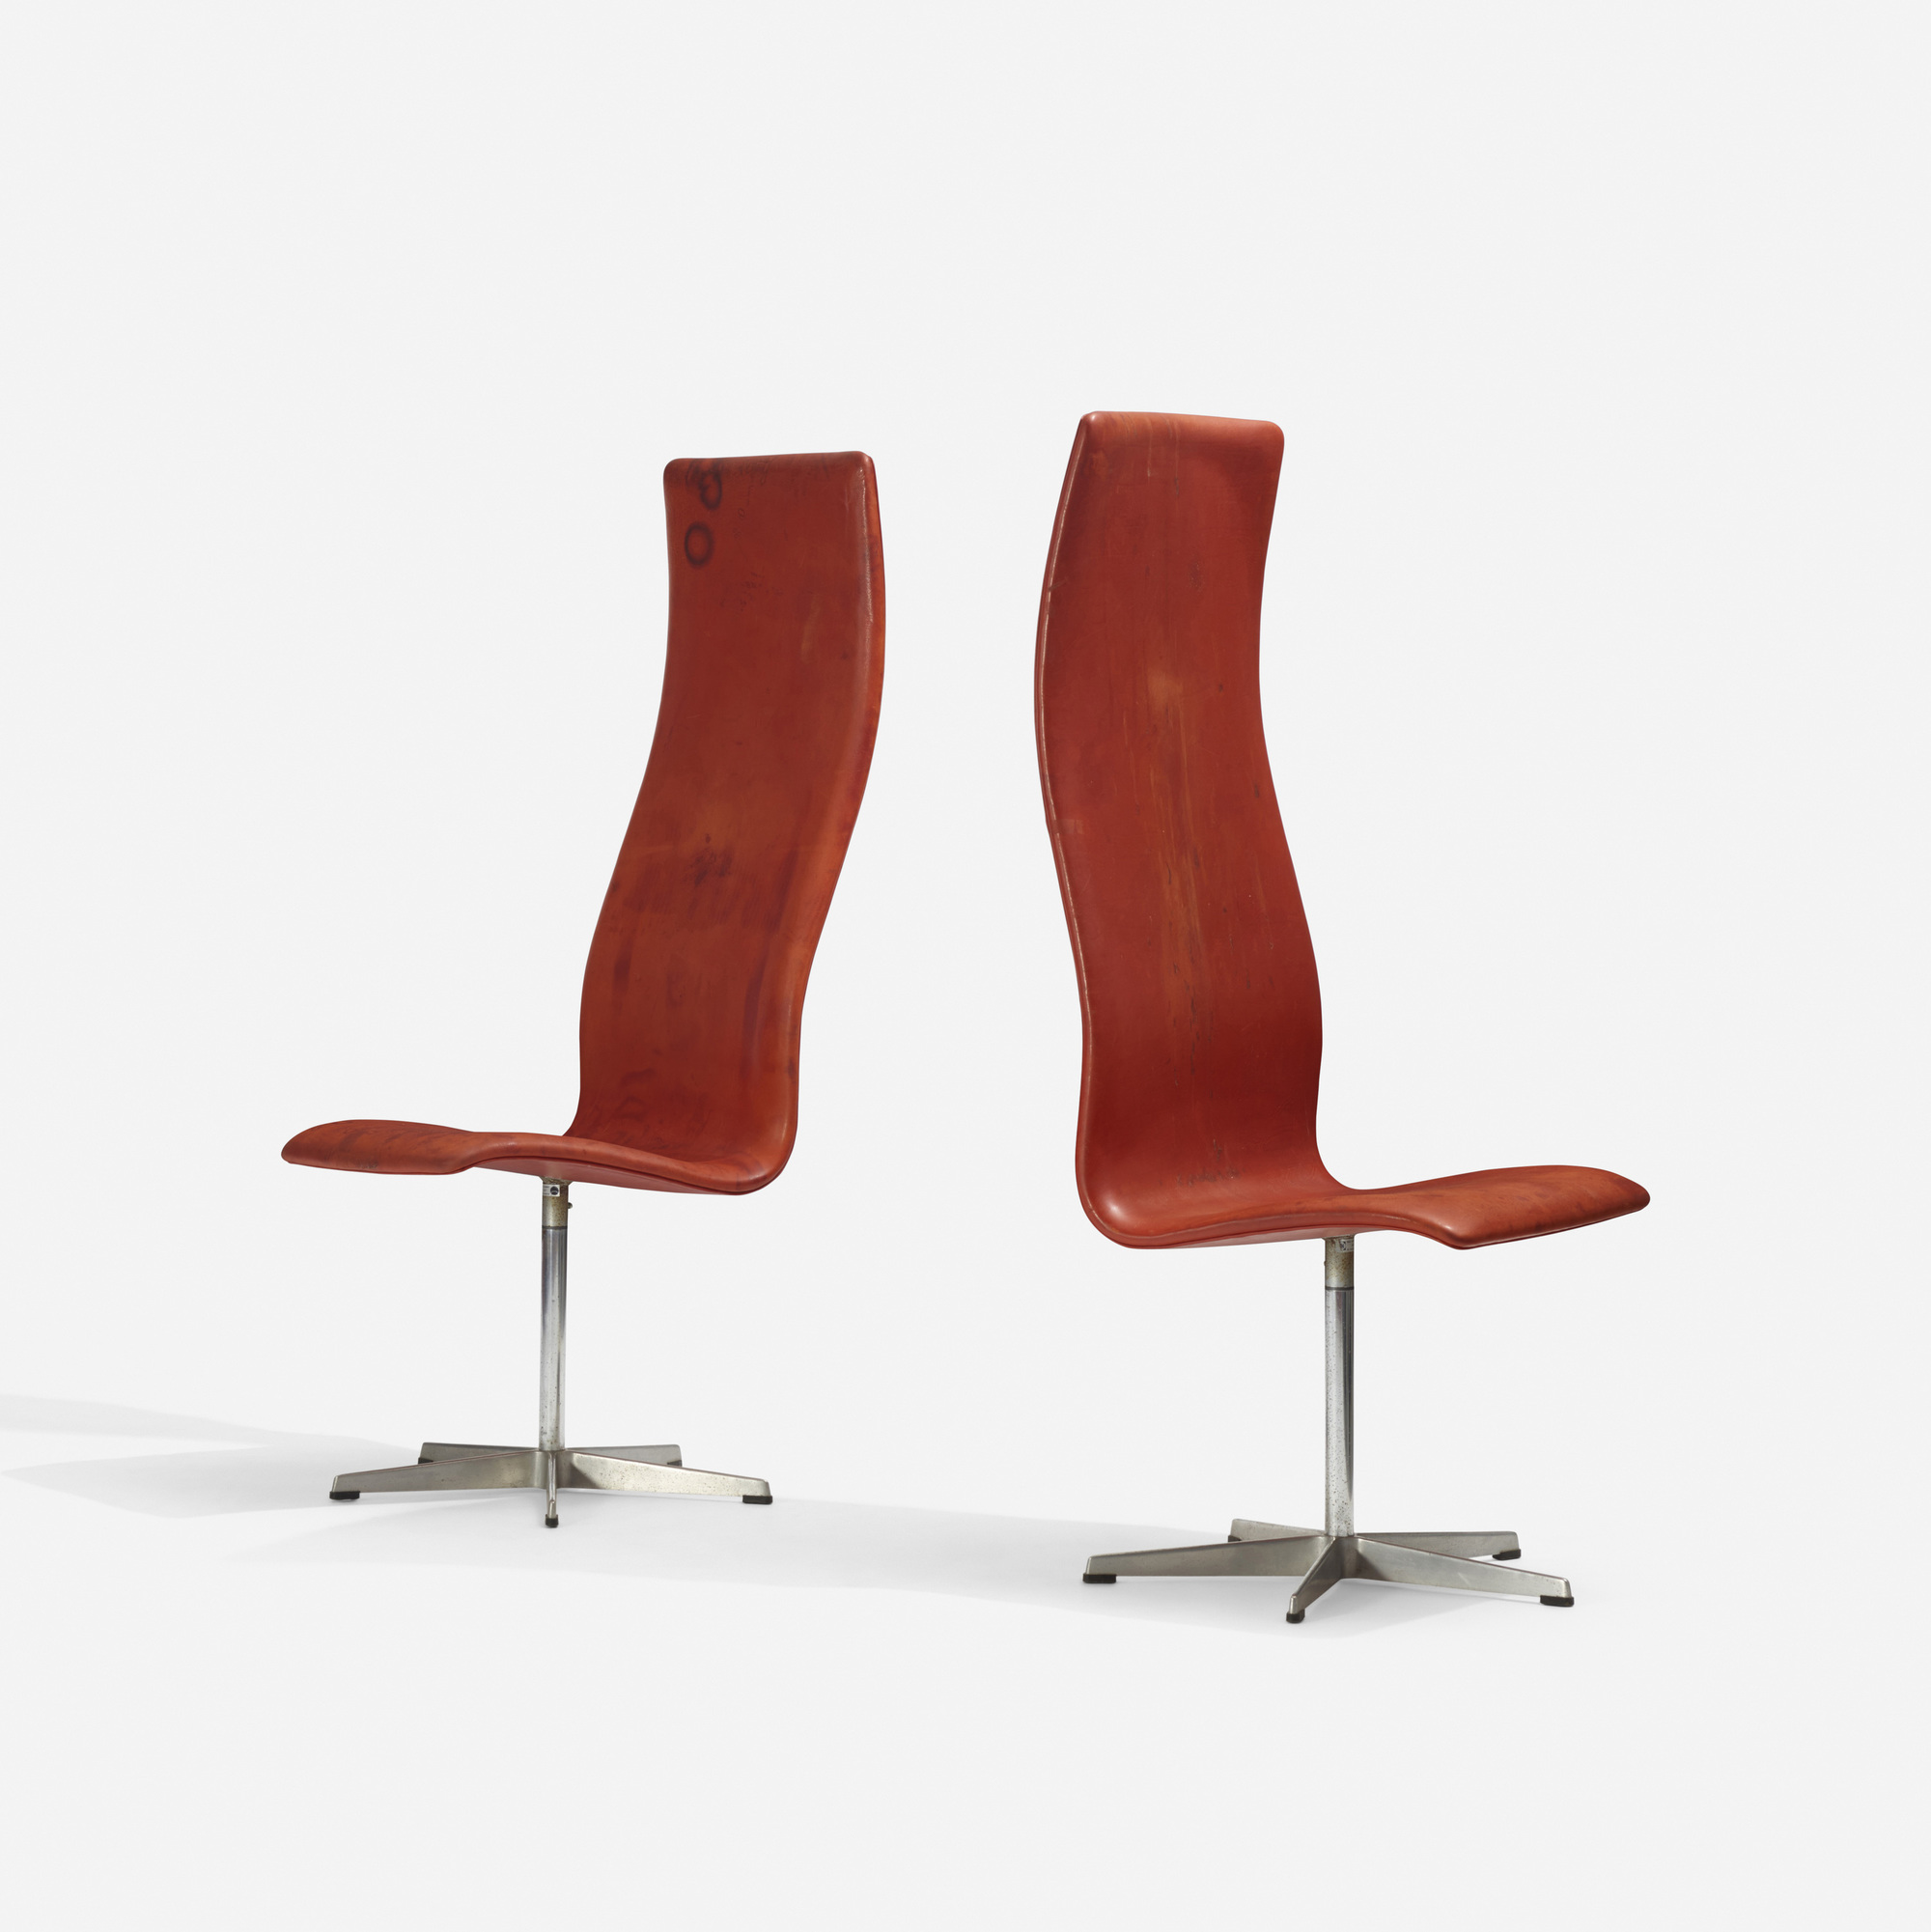 111: Arne Jacobsen / Oxford chairs model 7403, pair (2 of 3)